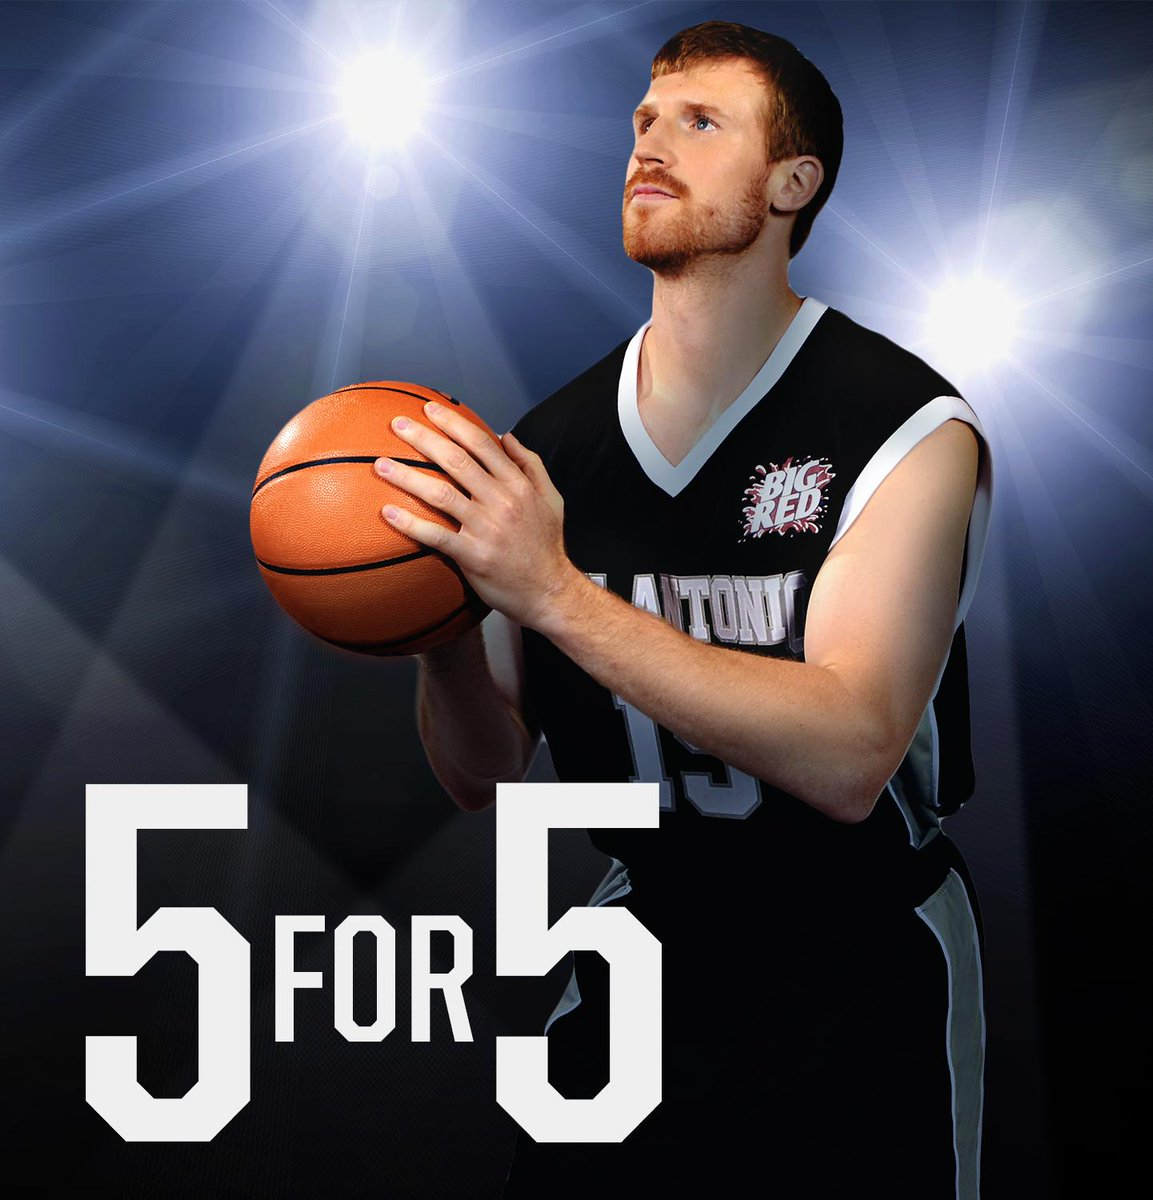 Bonner @RedMamba_15 shot 5 for 5 last nite, same day that he was announced as a Big Red ambassador! Talk about lucky! http://t.co/7BsAWiRykh